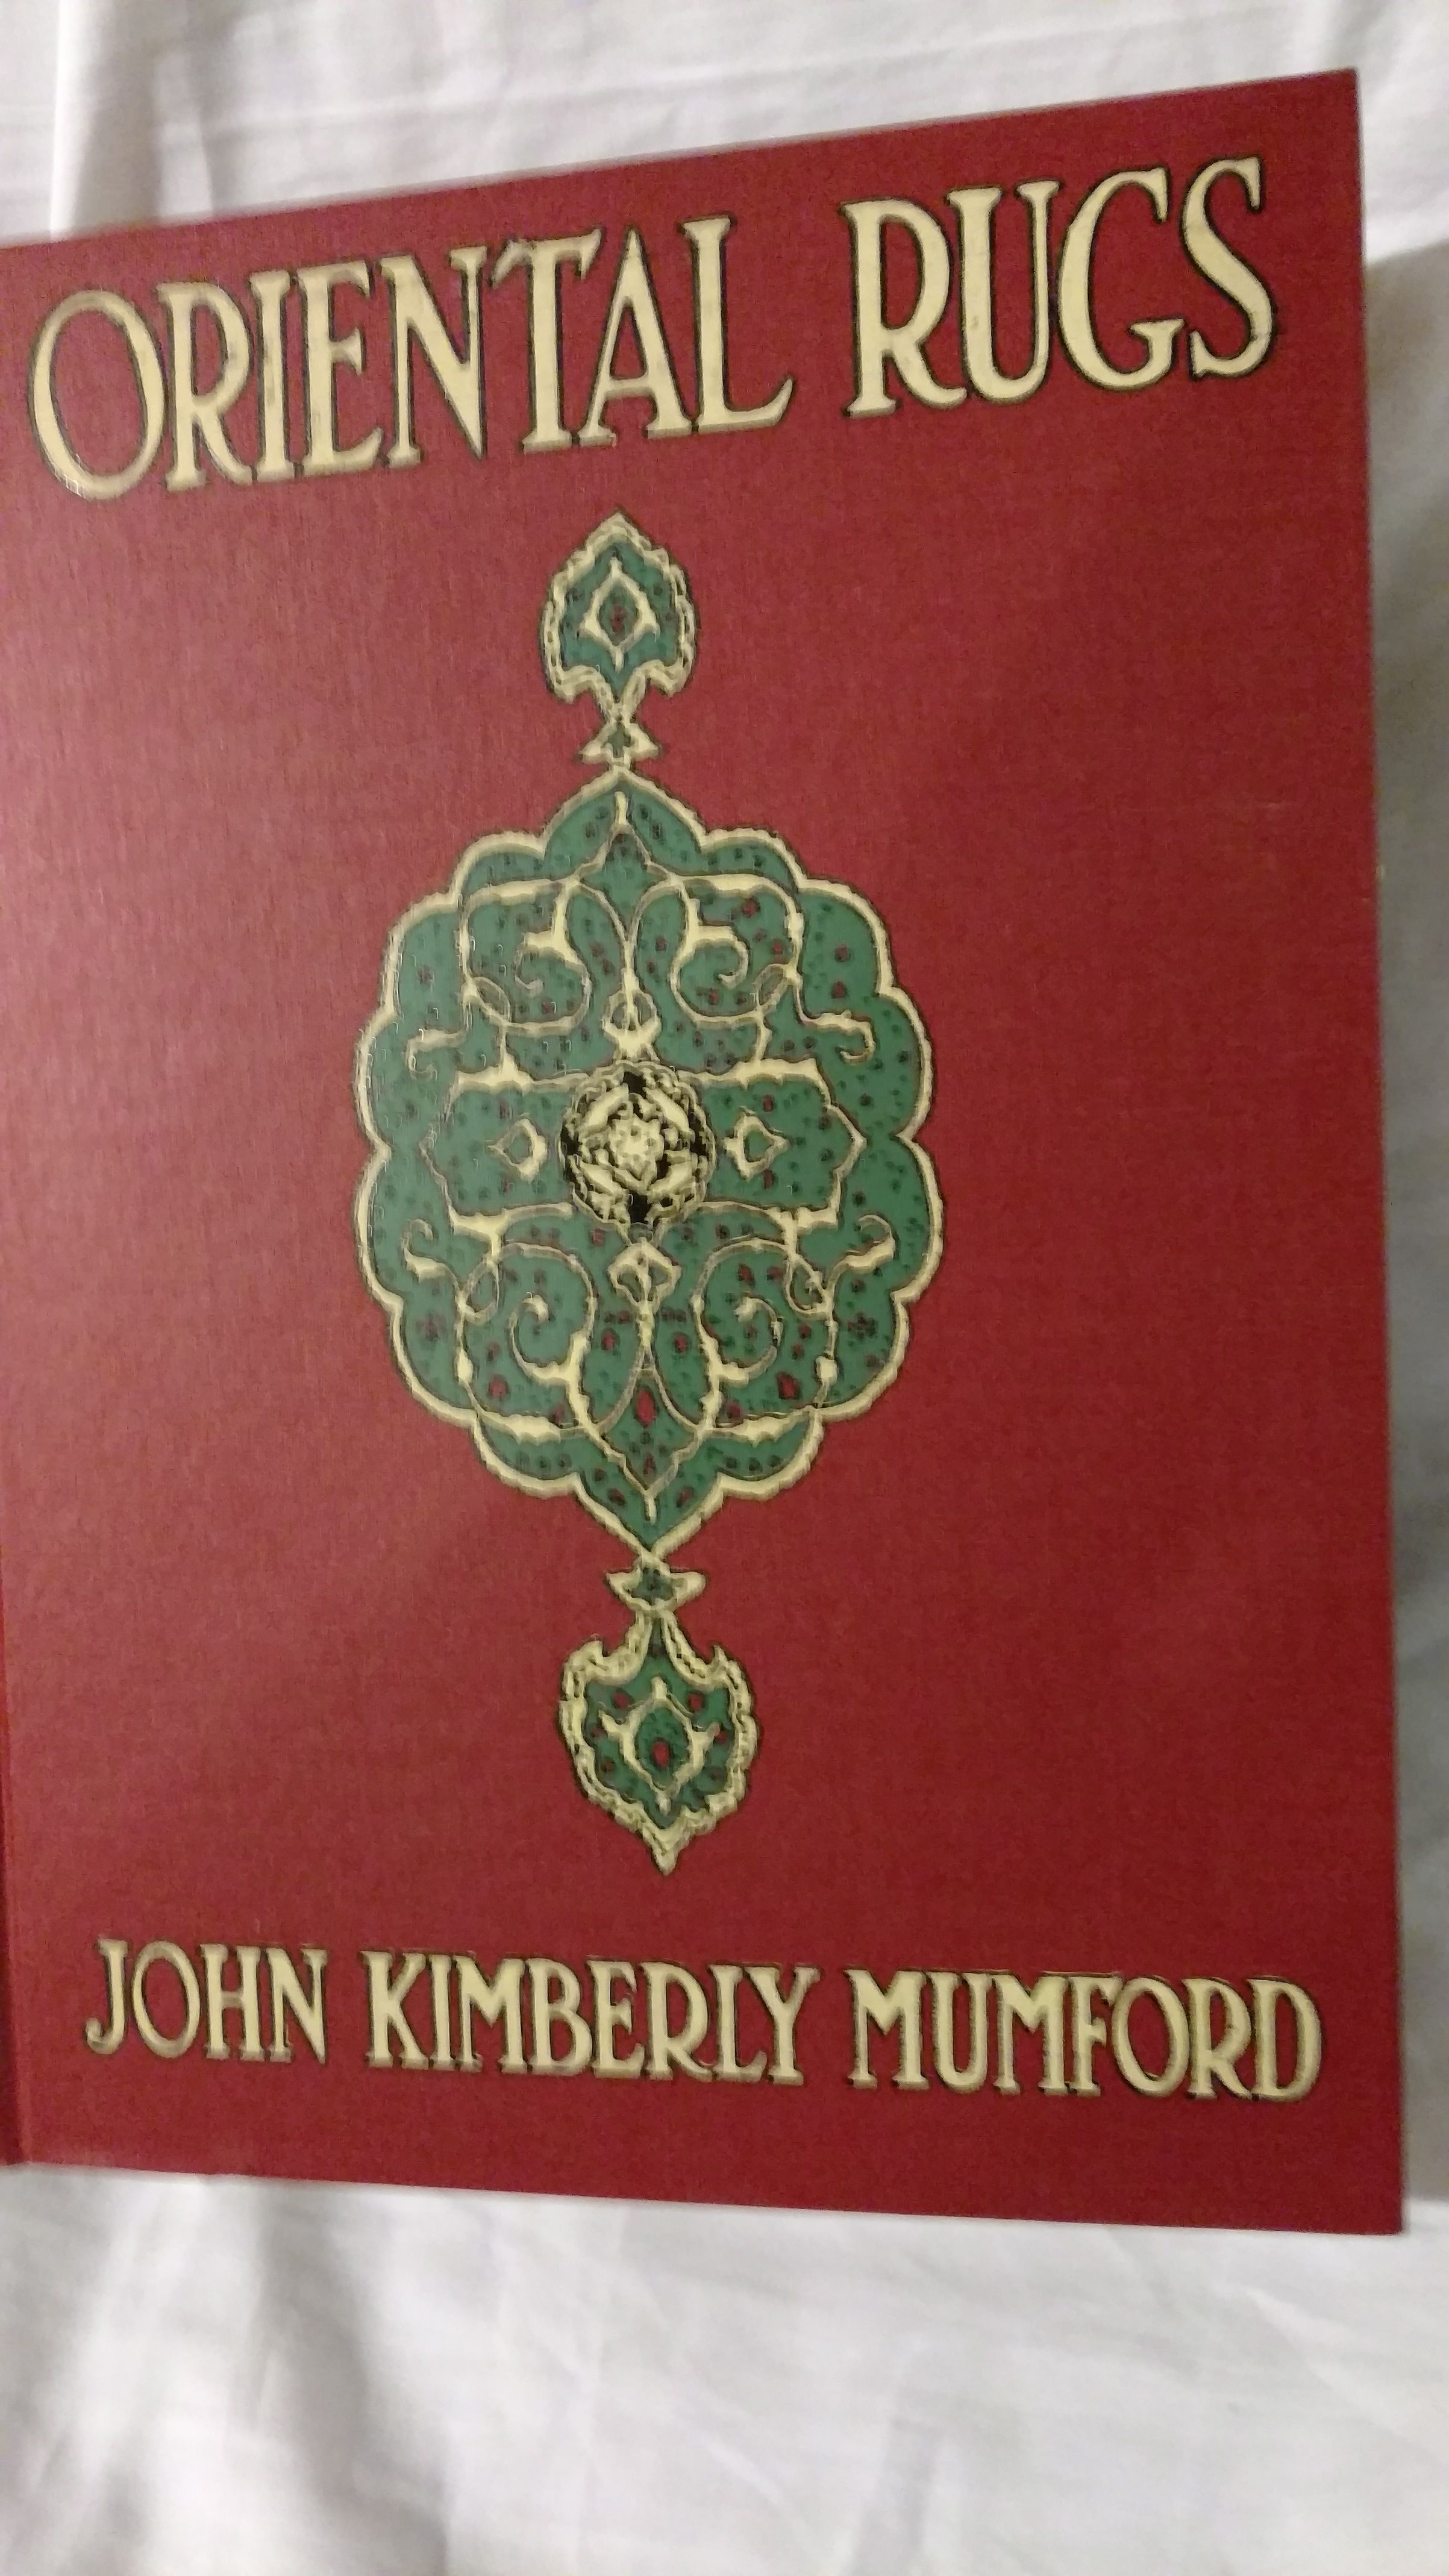 Oriental Rugs By John Kimberly Mumford Hardcover 3rd Edition 1902 From Antique Books Den And Biblio Com